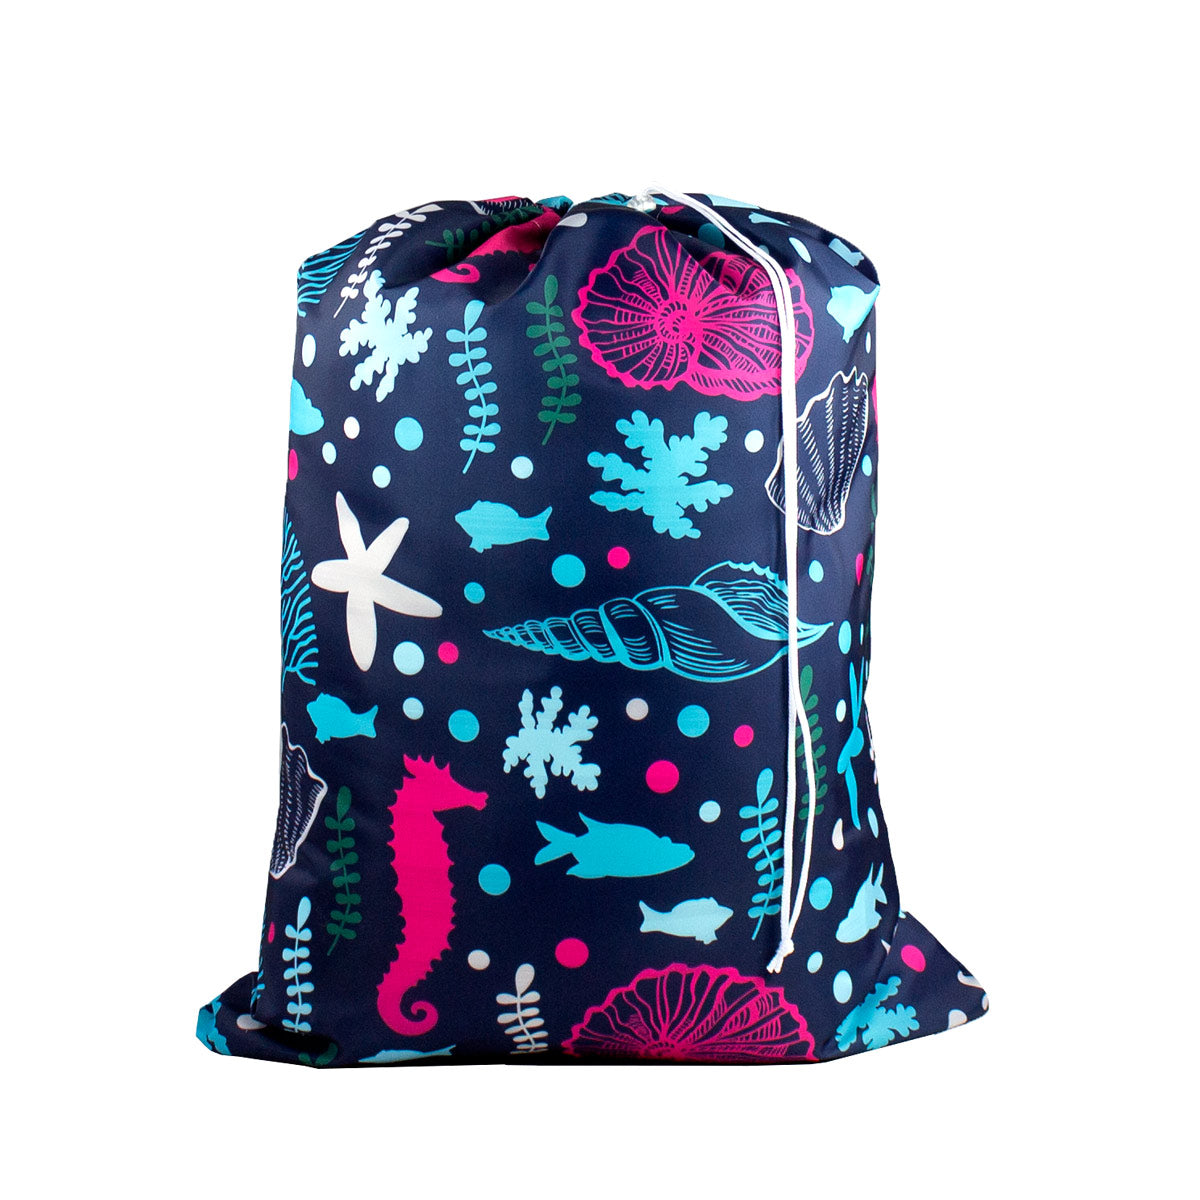 Designer Laundry Bag - Under the Sea